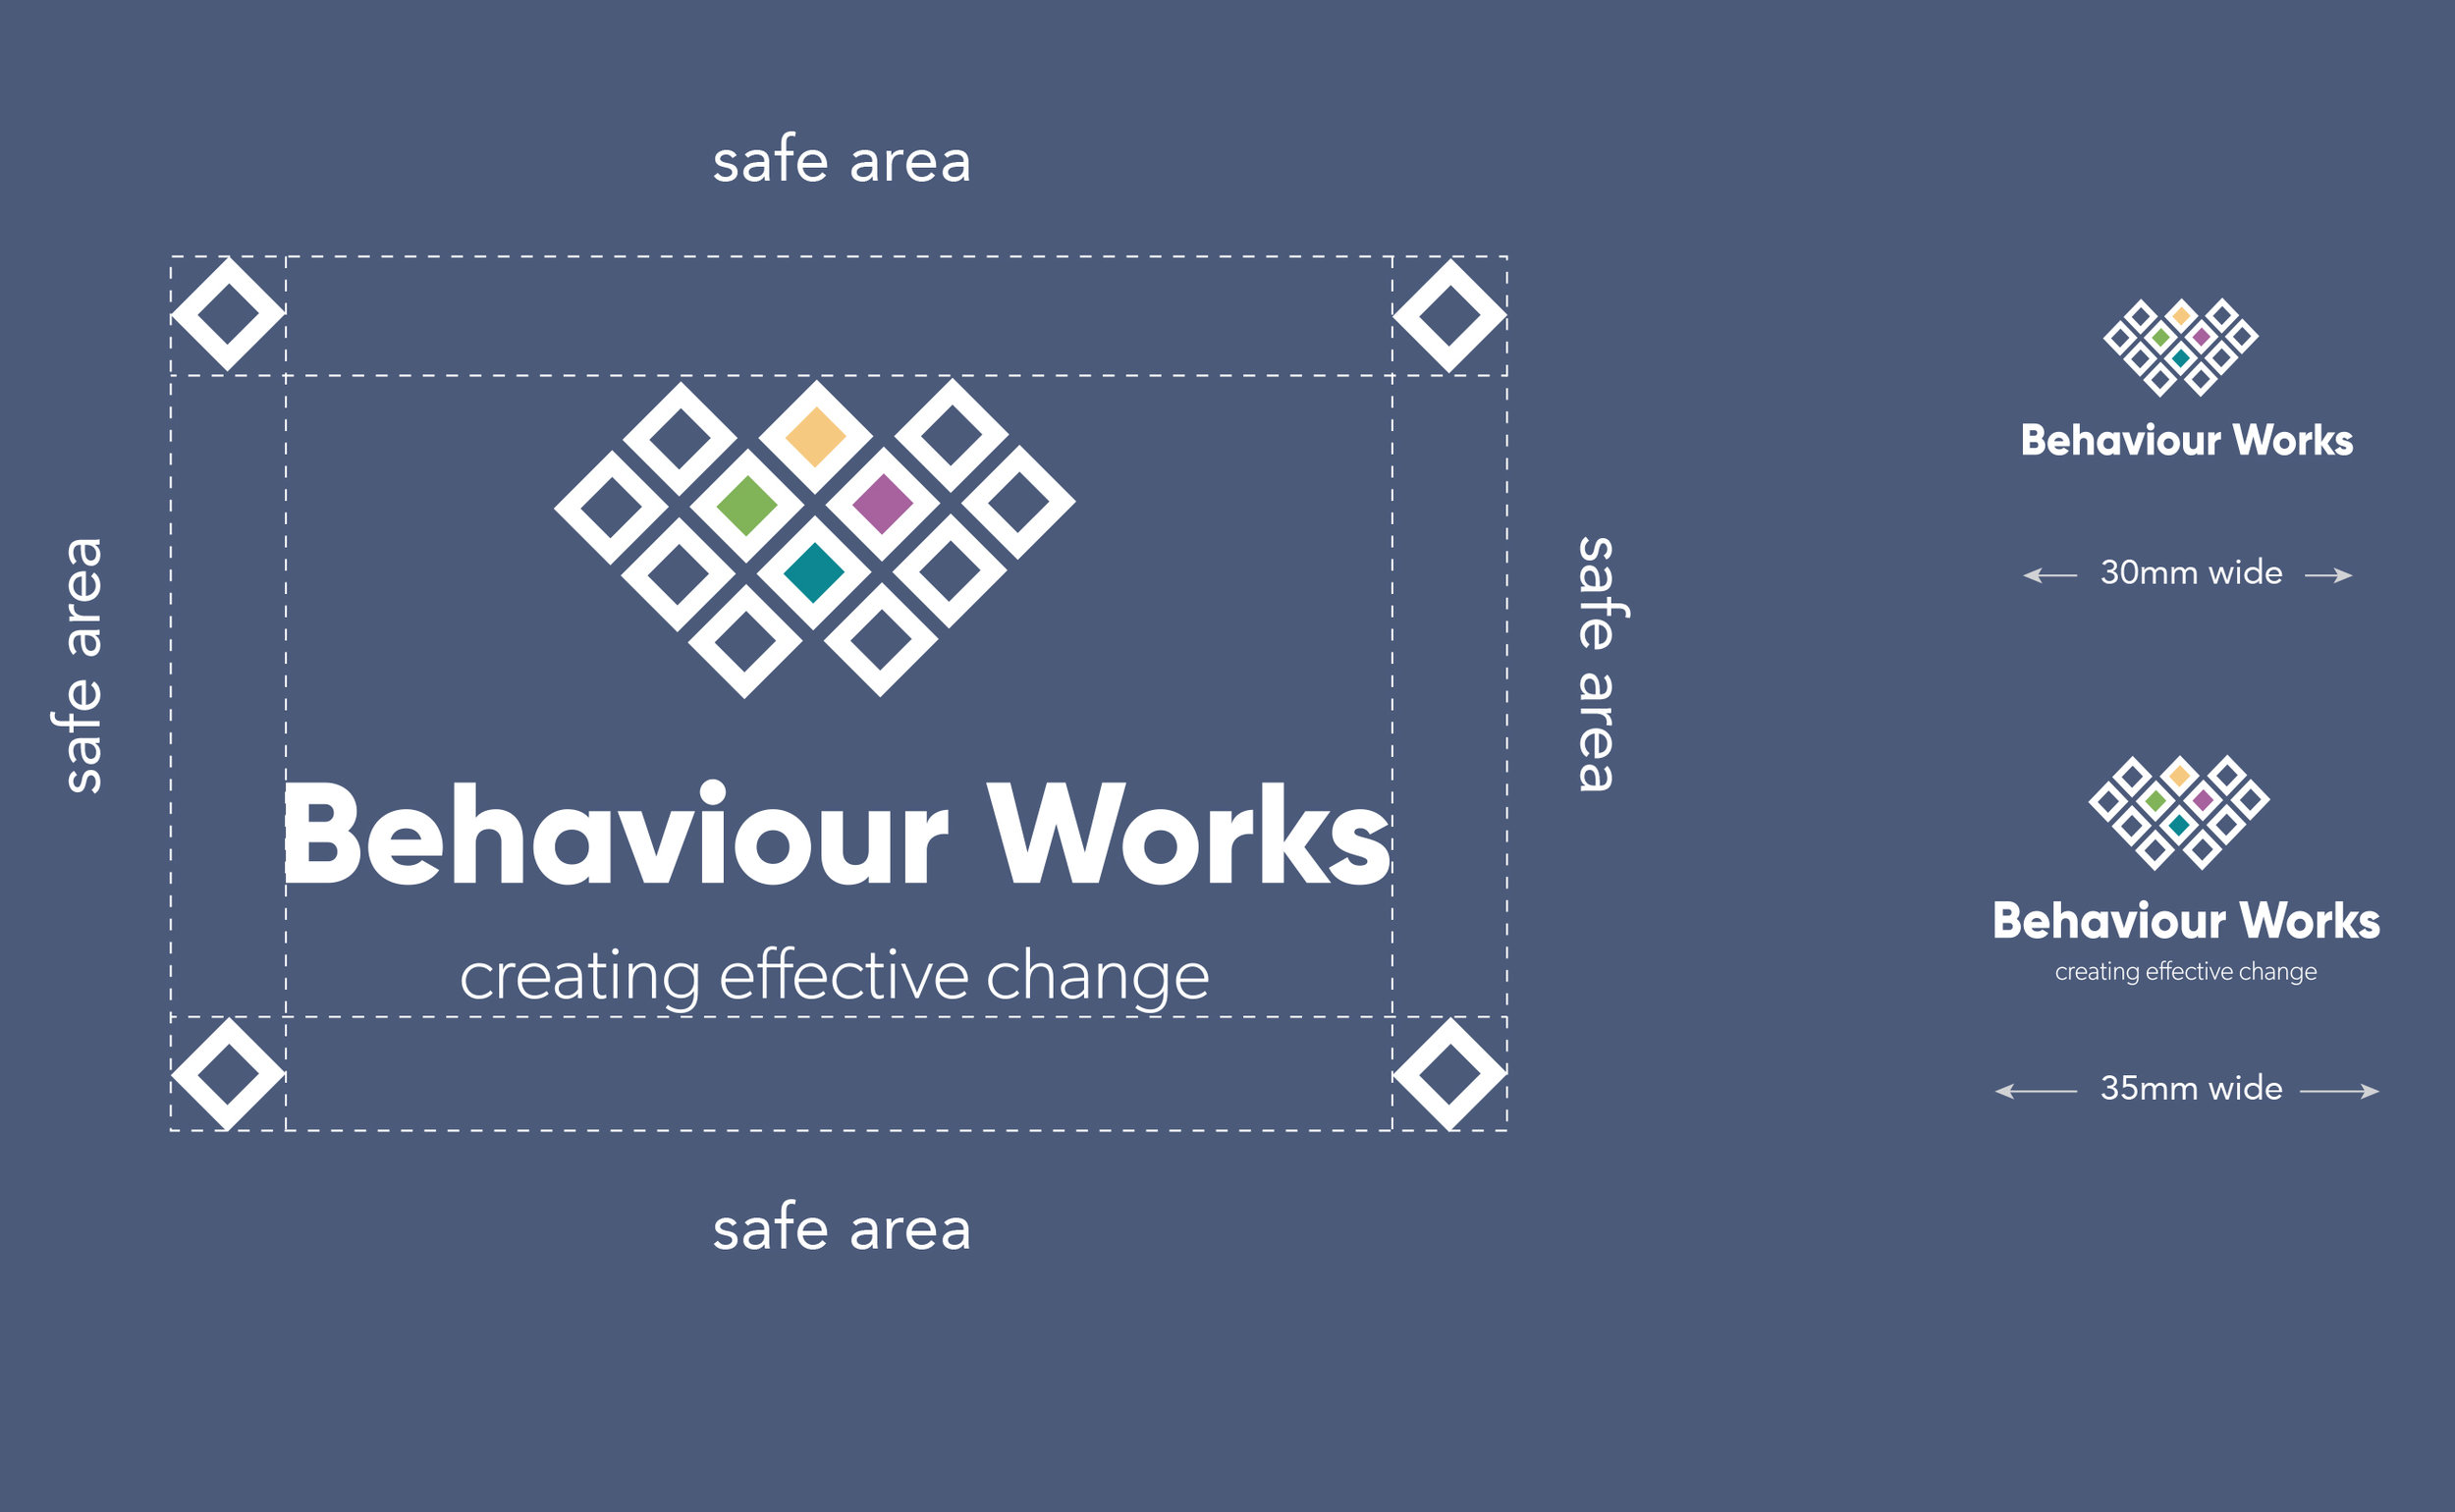 Behaviour Works brand guidelines